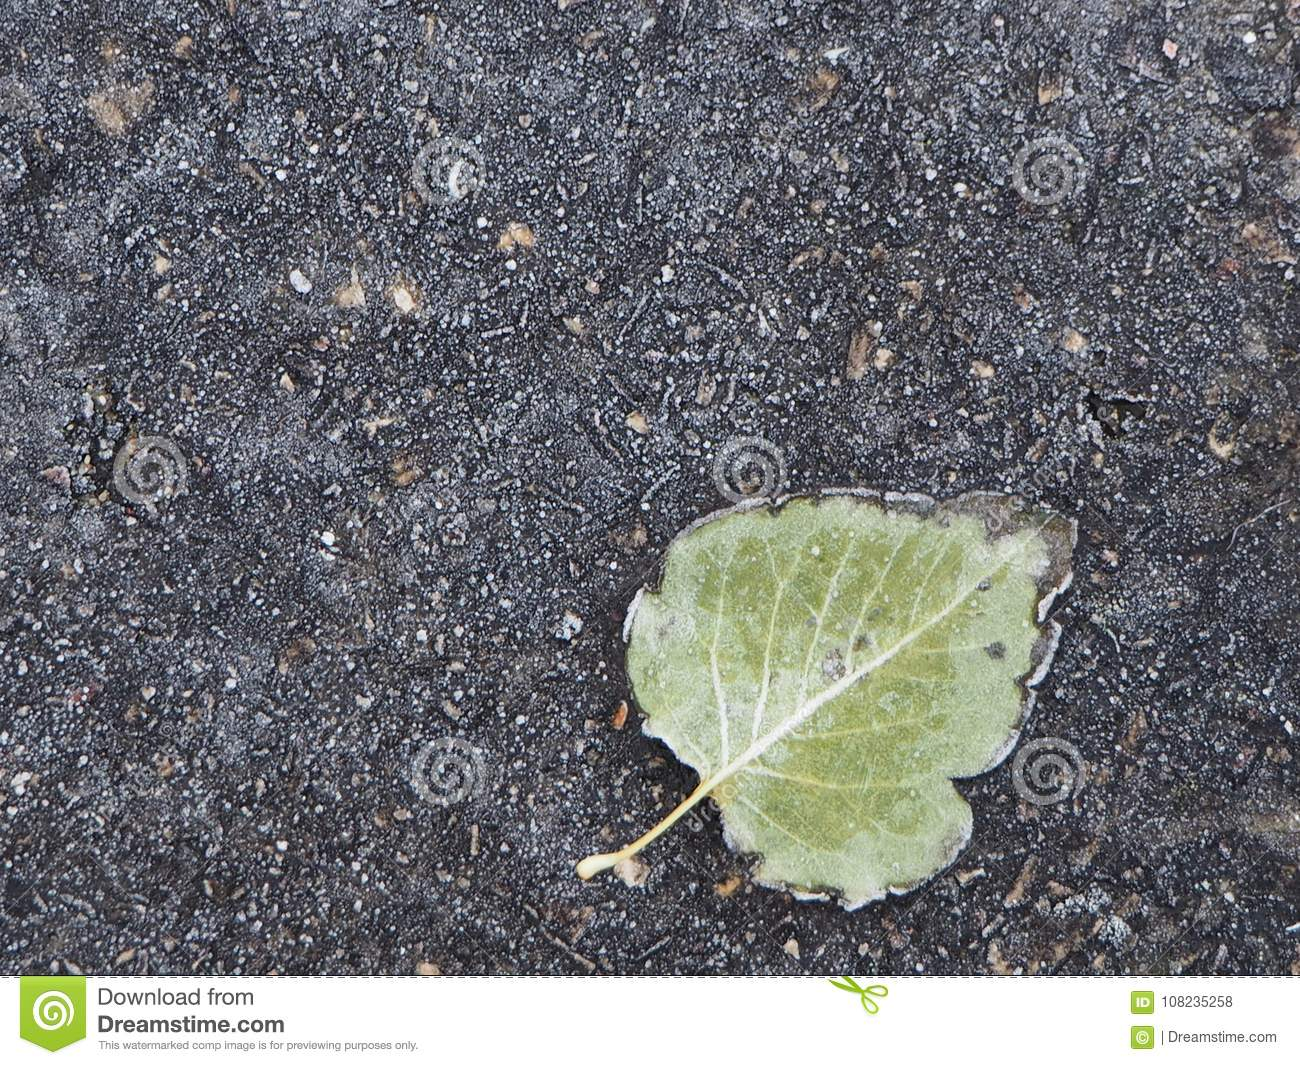 Frozen green leaf stuck to the pavement